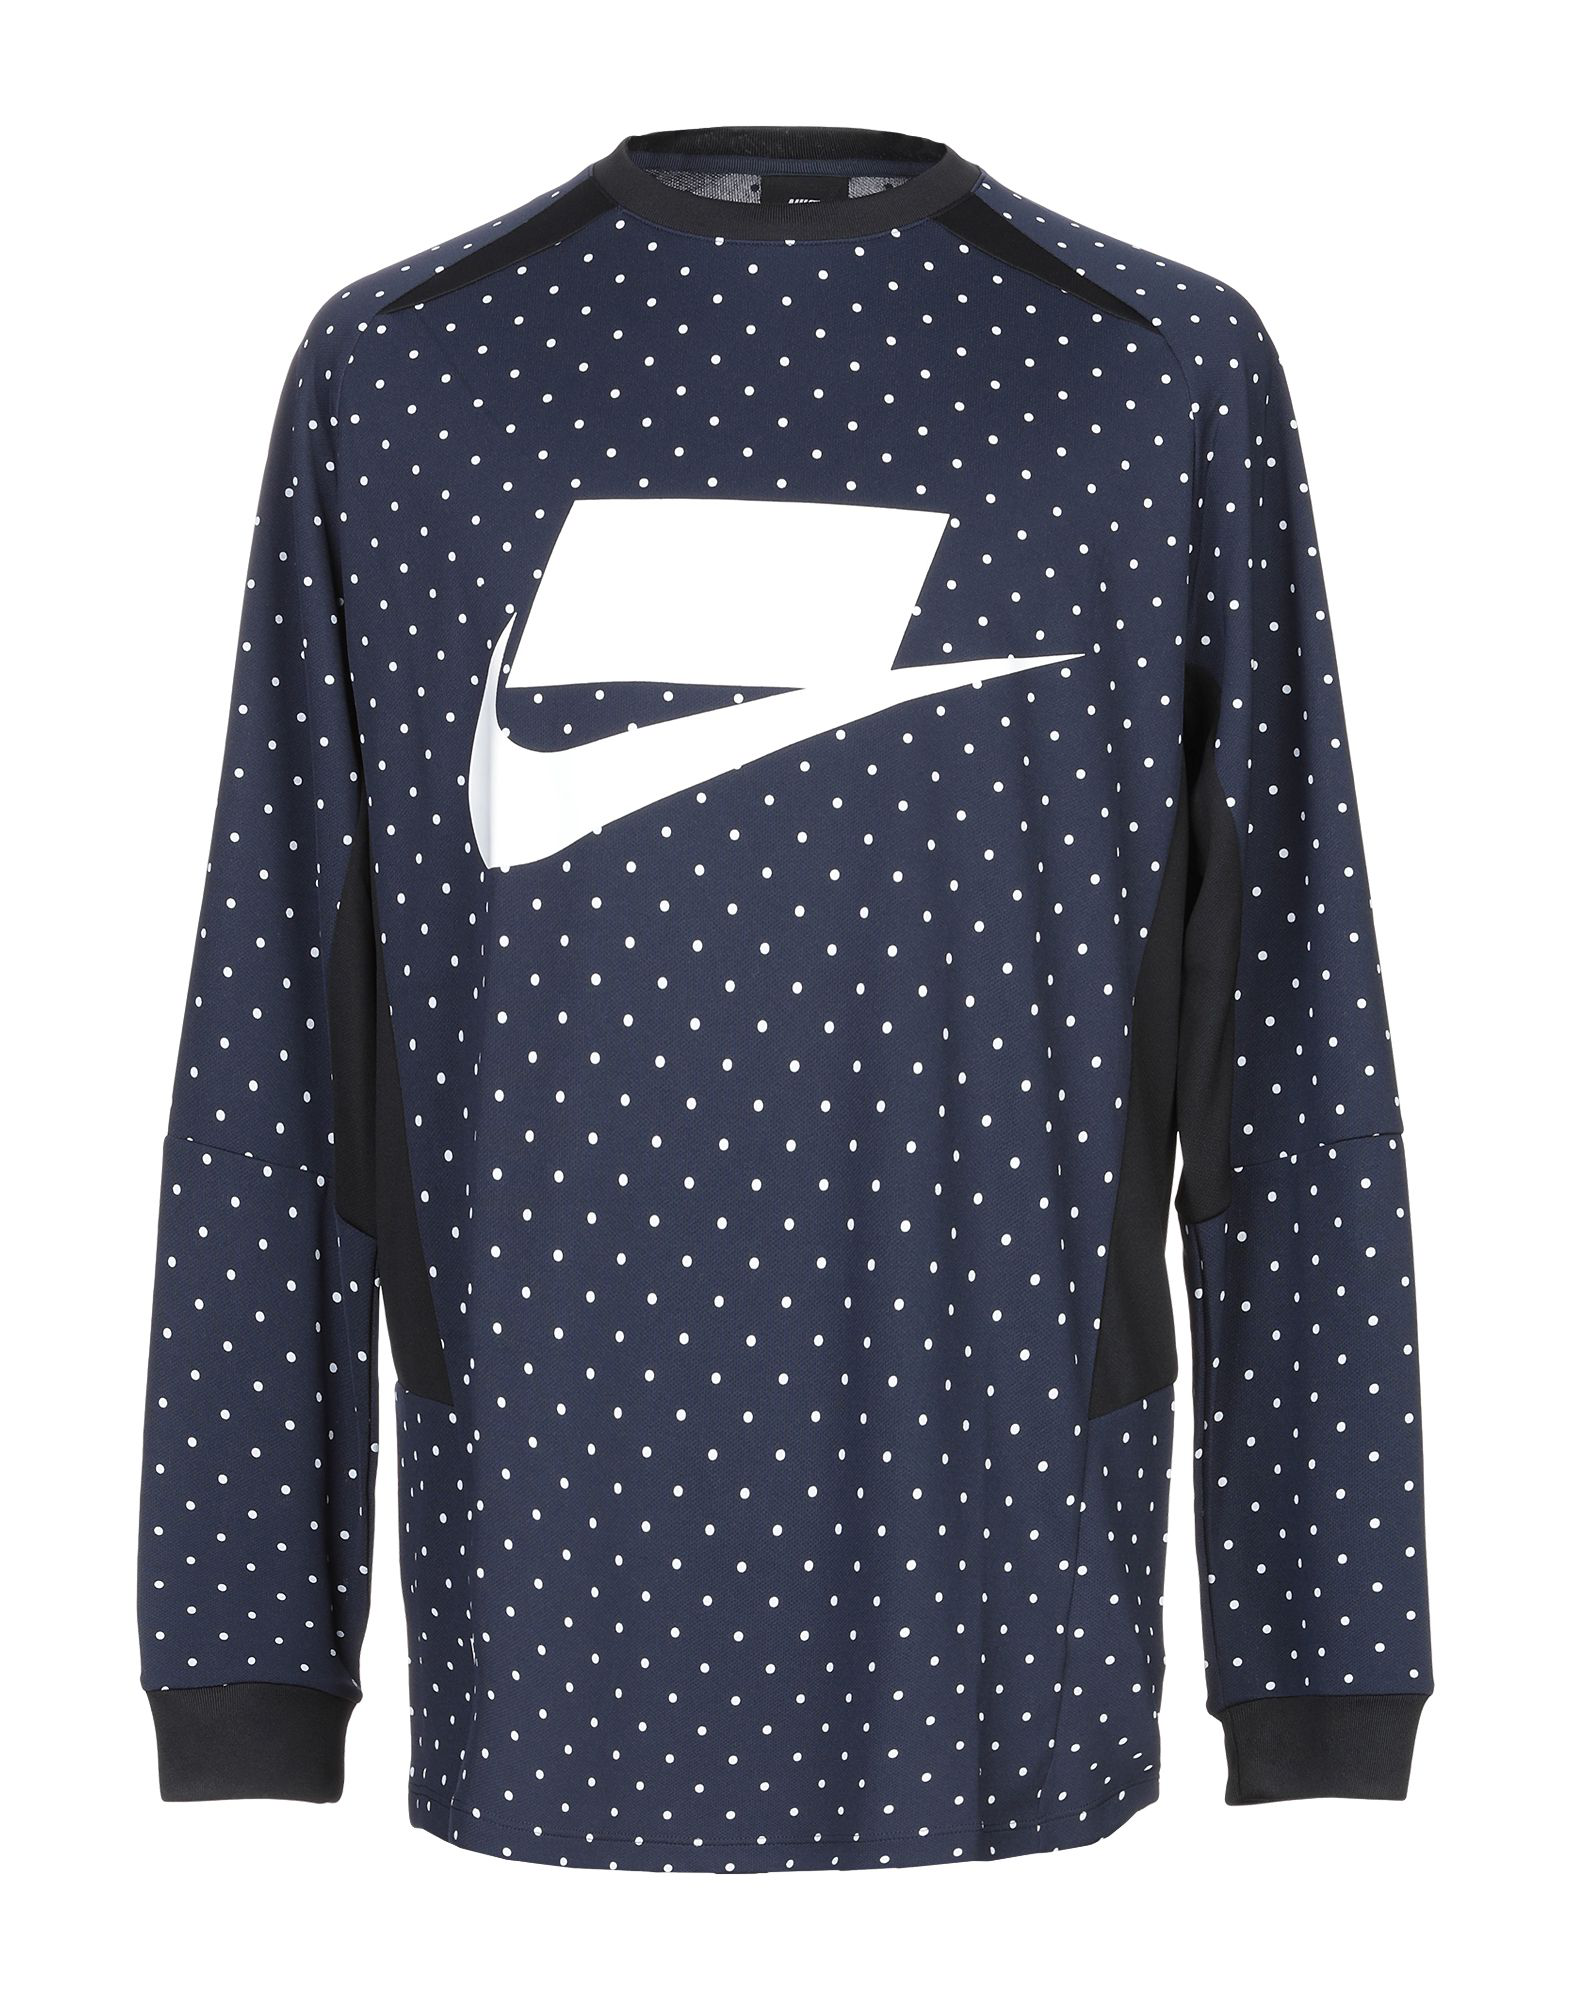 nike shirt no logo